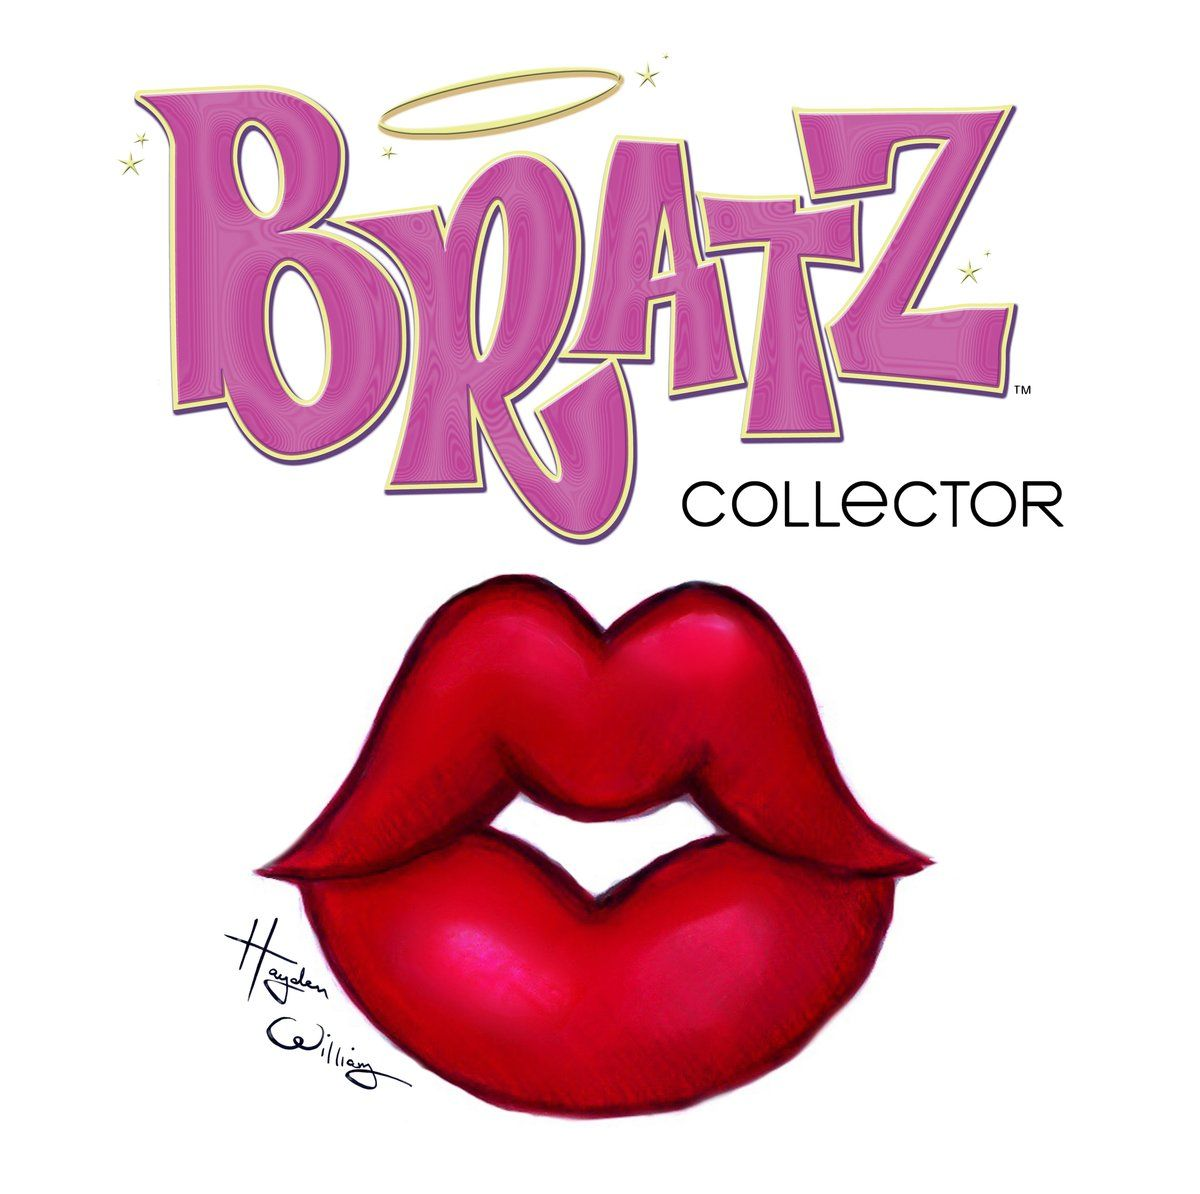 Bratz Logo - BRATZ are coming back in Fall 2018! - YouLoveIt.com